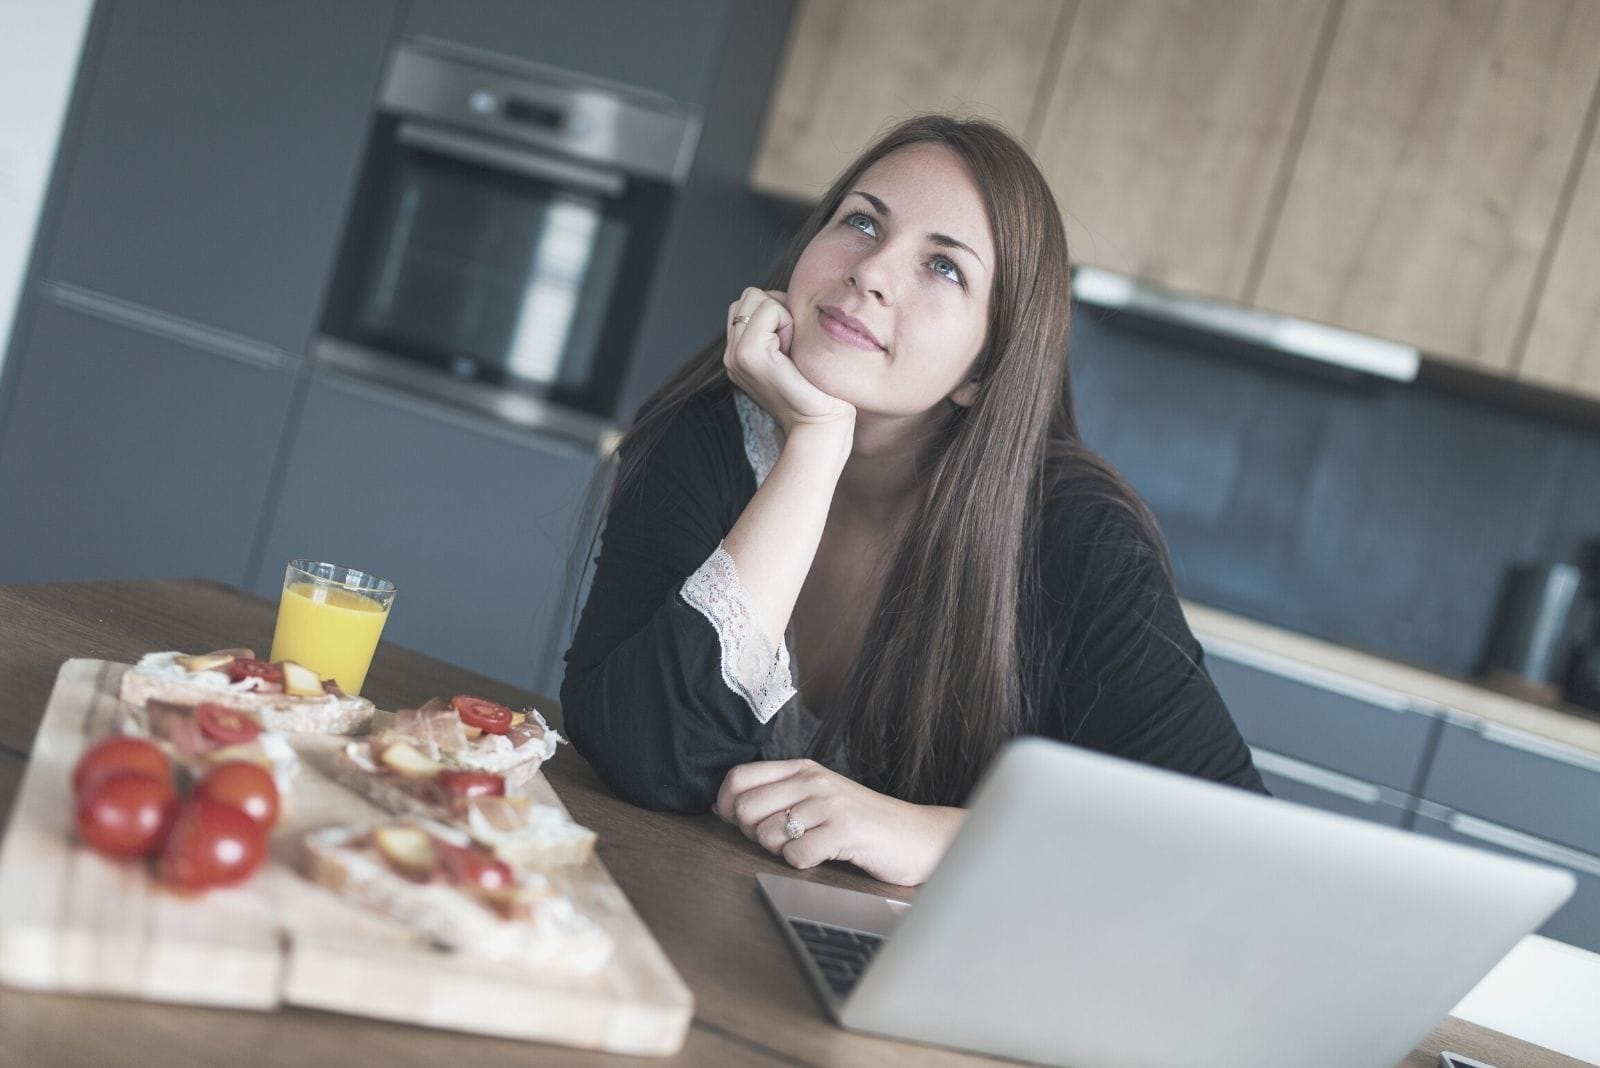 young woman daydreaming in the kitchen with food on the side while working on laptop